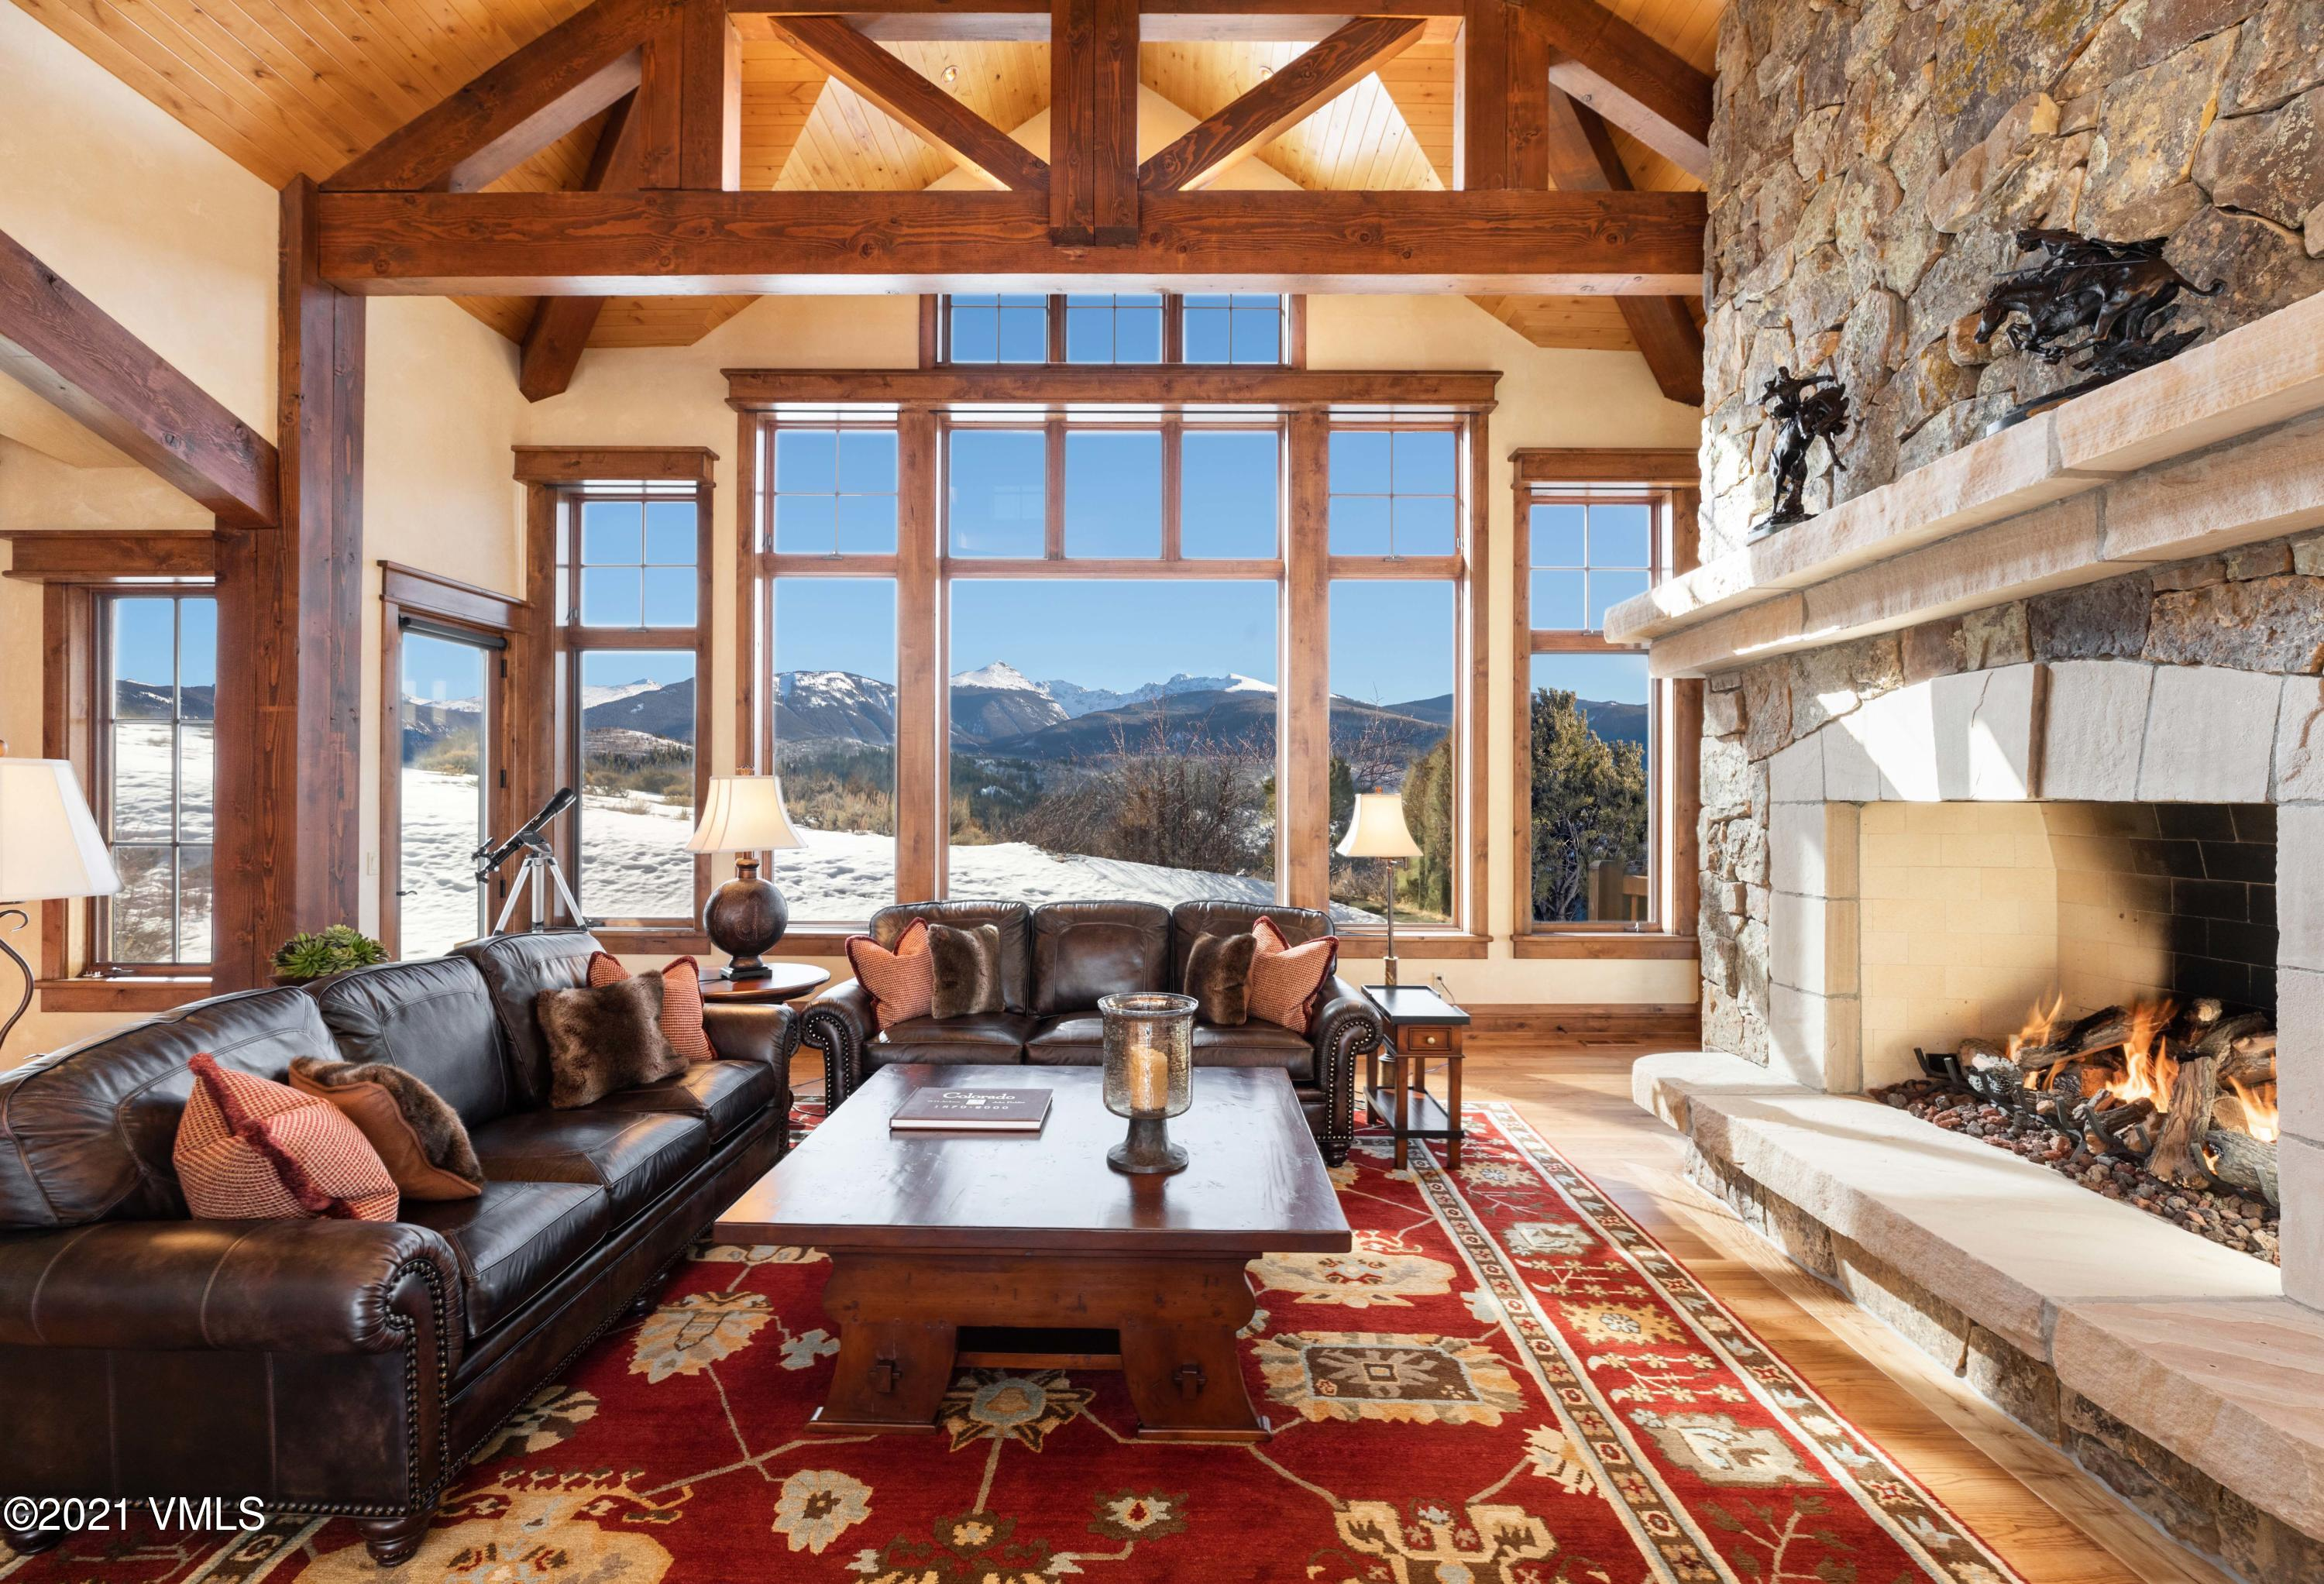 This beautiful, thoughtfully designed home boasts unique, magnificent, 270-degree views of the Sawatch Range, Flattop Mountain as well as New York Mountain and beyond. Located on The Divide Side of this community offering sunny southern exposure, no expense was spared when this residence was built. Property features an open-concept floorplan with stunning great room that frames the majestic views; adjoined dining room, kitchen and hearth room. Large kitchen with top of the line appliances; custom cabinetry; granite countertops. Main-level primary suite and office; large bedroom suites all with en-suite bathrooms; lower level family and entertainment area; laundry on main and lower level; concrete tile roof; air-conditioning and humidification throughout. Expansive outdoor spaces for entertainment or relaxation with privacy from neighboring homes. Private gated community with security and many amenities plus availability to join one of the best golf clubs that the Vail Valley has to offer.